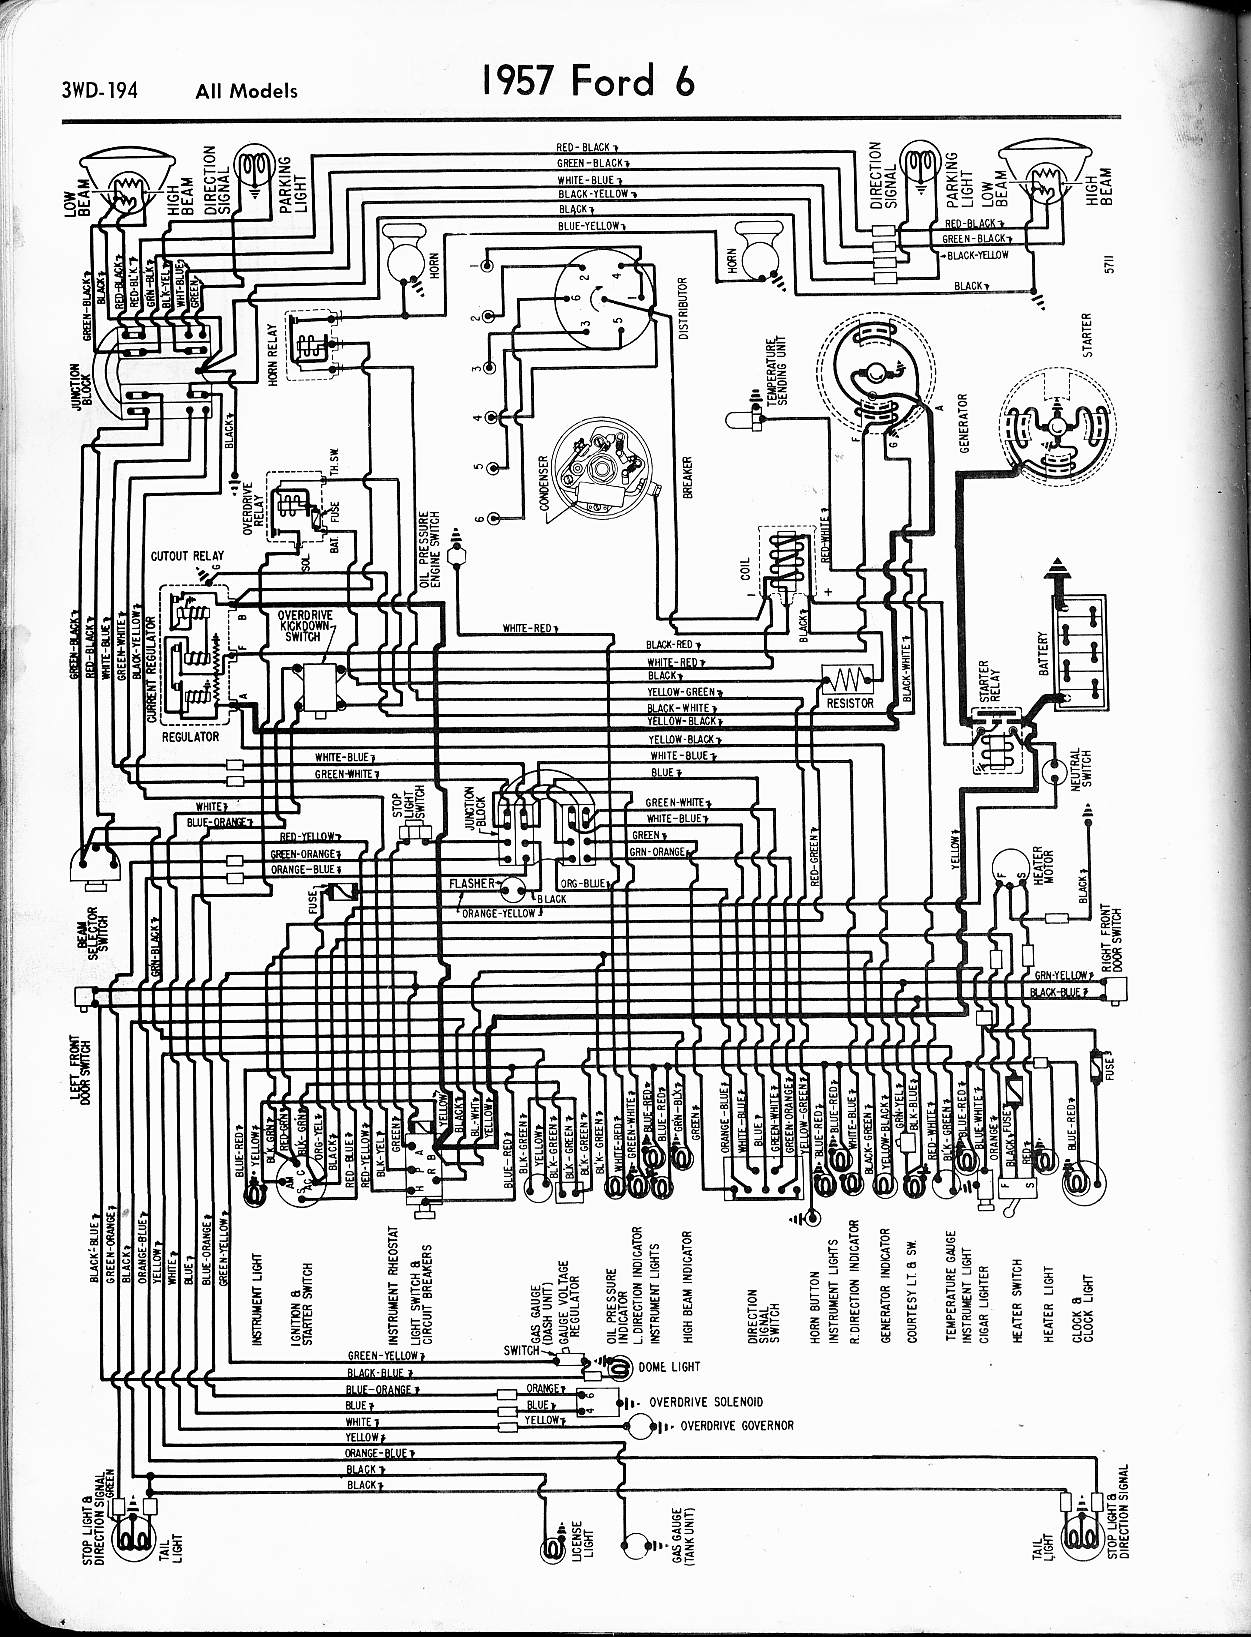 1957 ford ranch wagon wiring diagram trusted wiring diagram u2022 rh soulmatestyle co